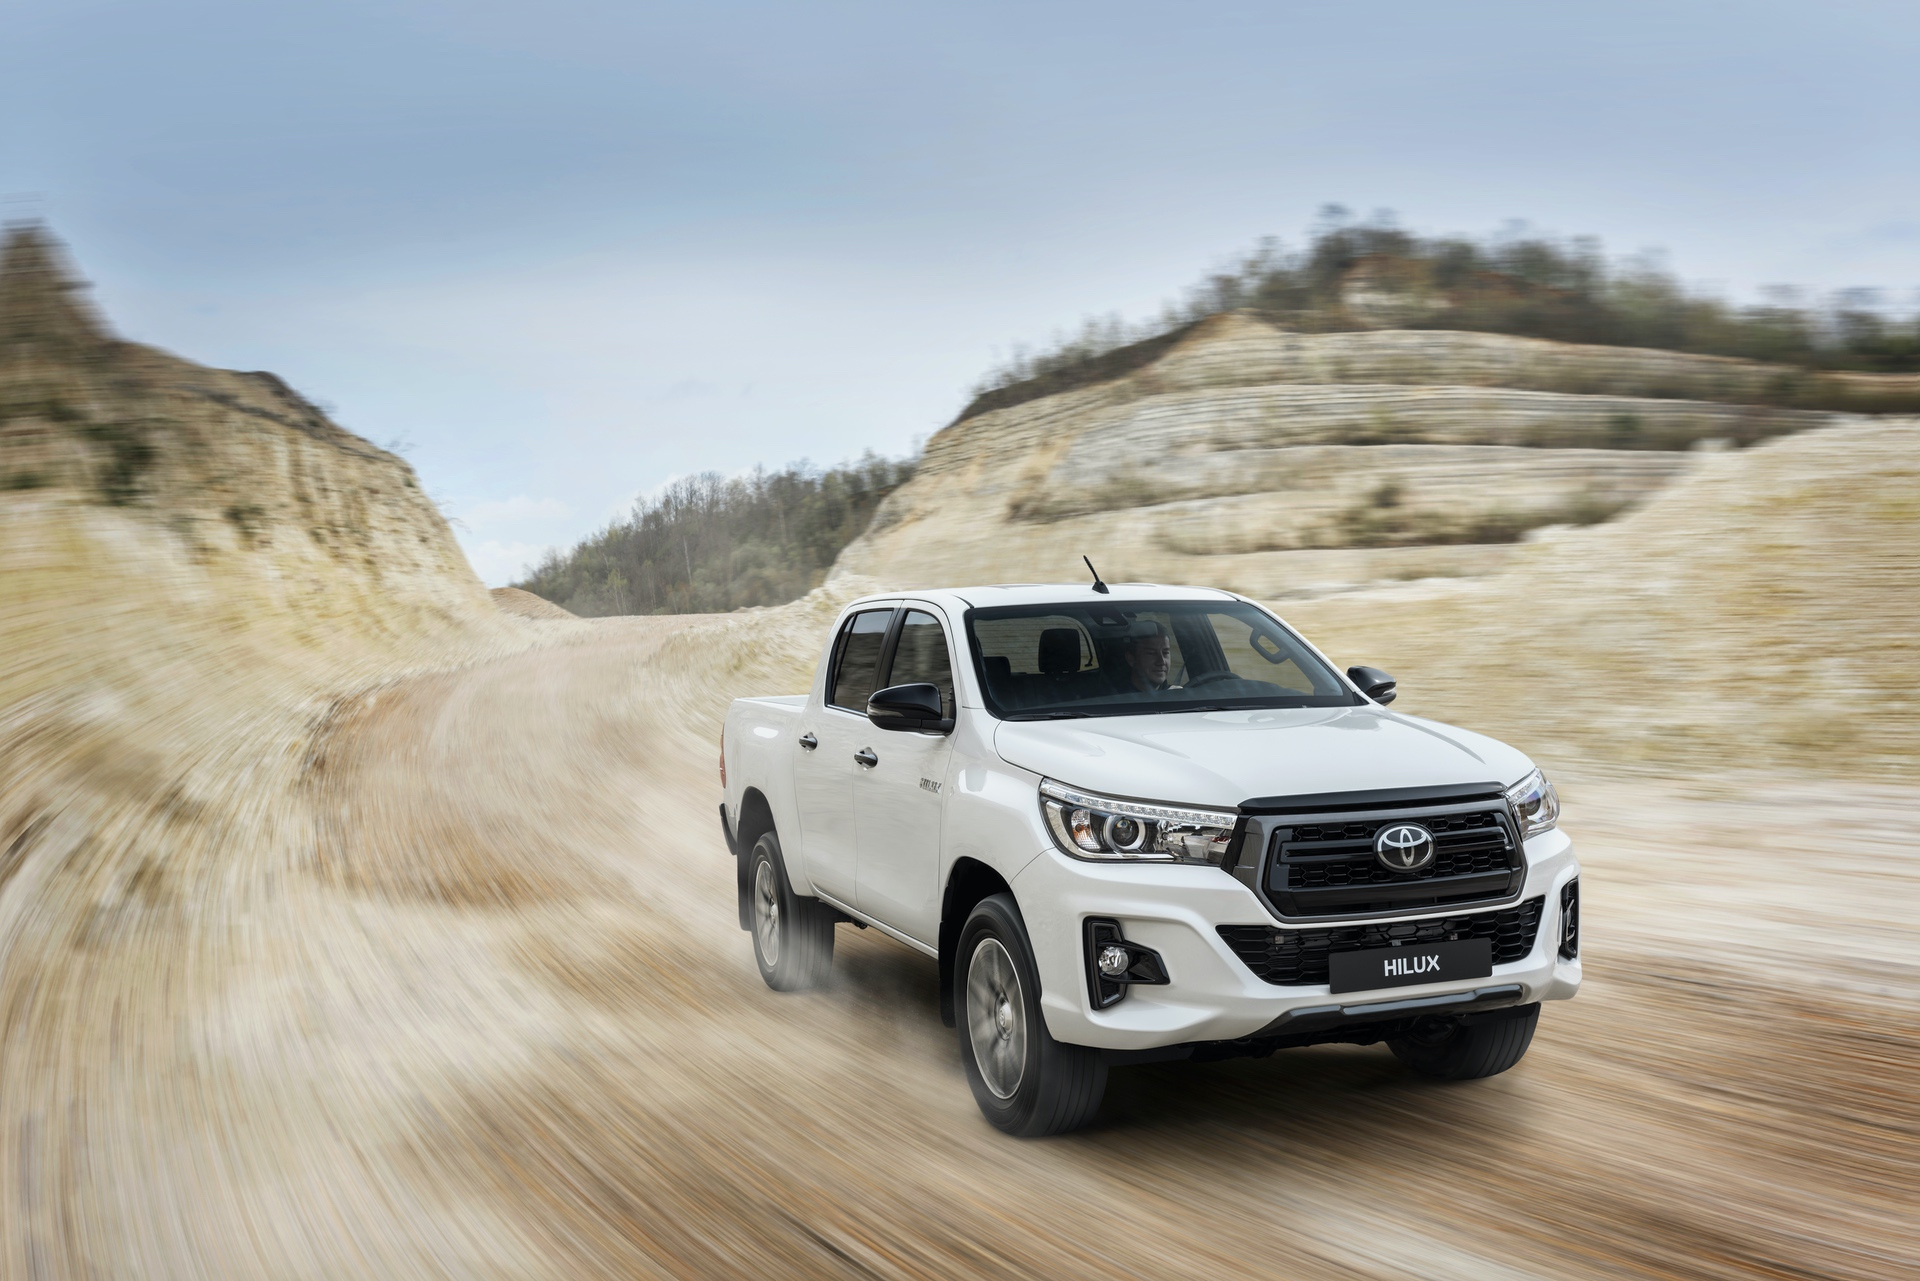 Toyota_Hilux_Special_Edition_0057